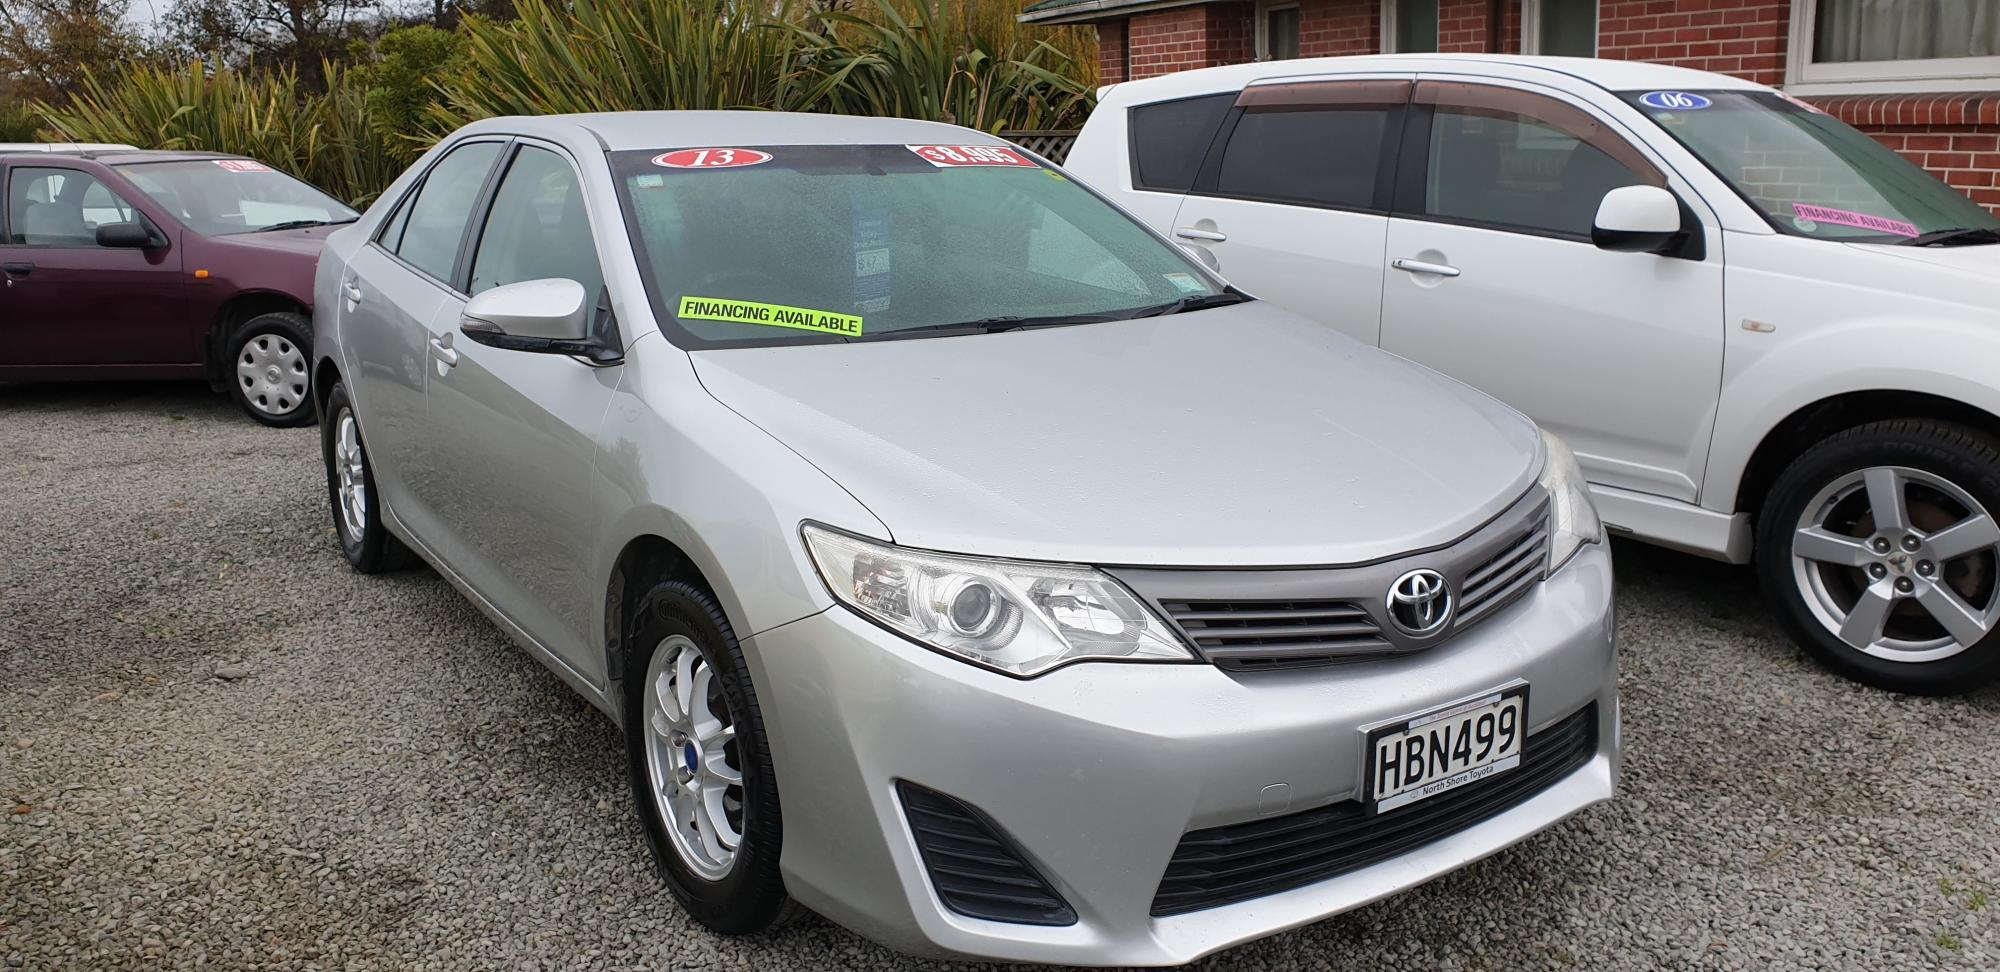 image-0, 2013 toyota camry at Timaru